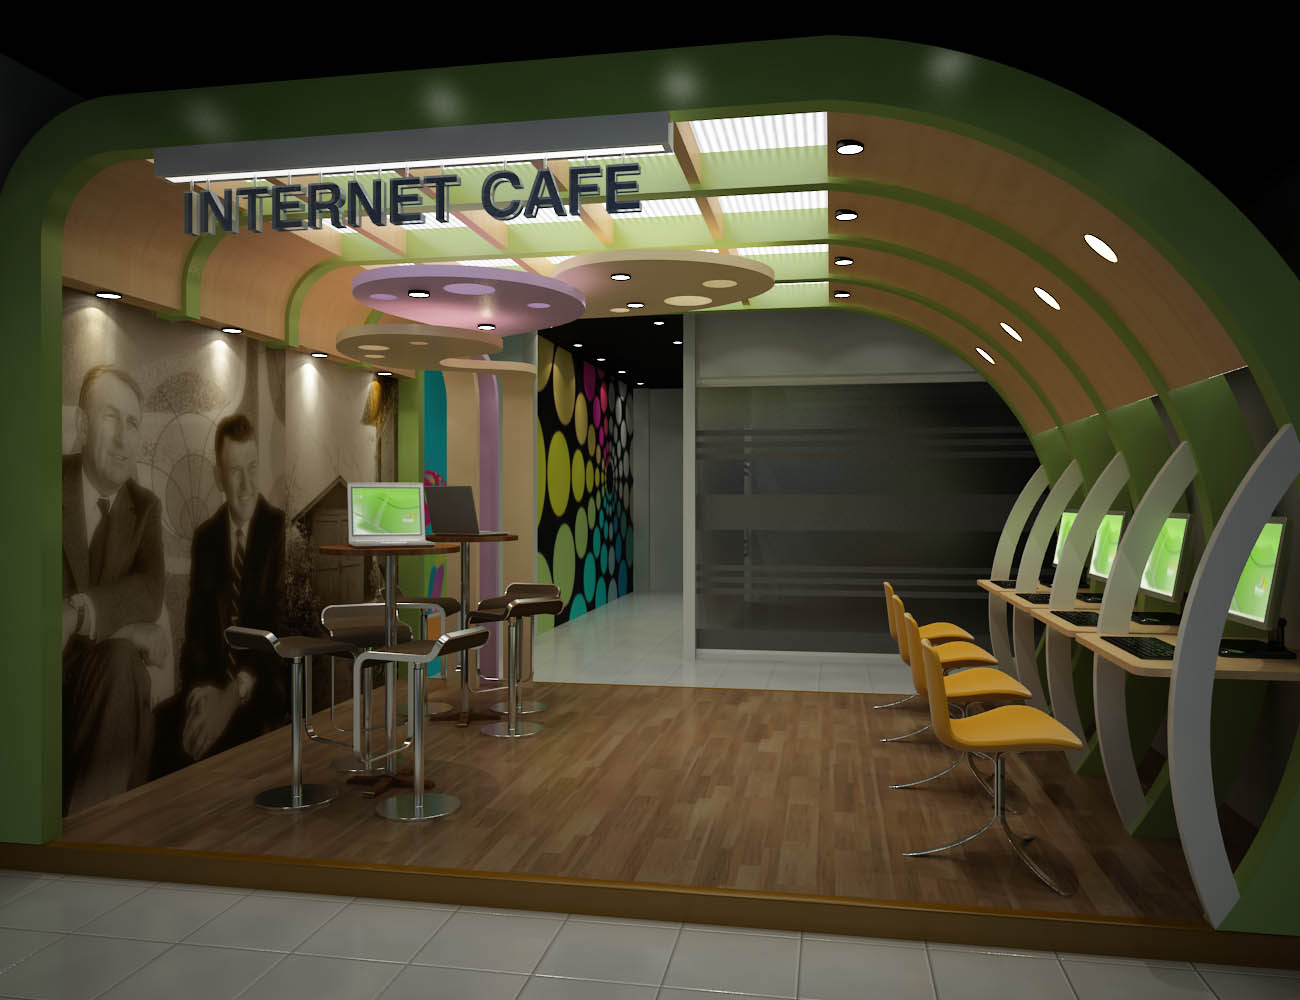 business plan on cyber cafe Free internet cafe business plan for raising capital from investors, banks, or grant companies please note that the financials in this complete free business plan are completely fictitious and may not match the text of the business plan below.